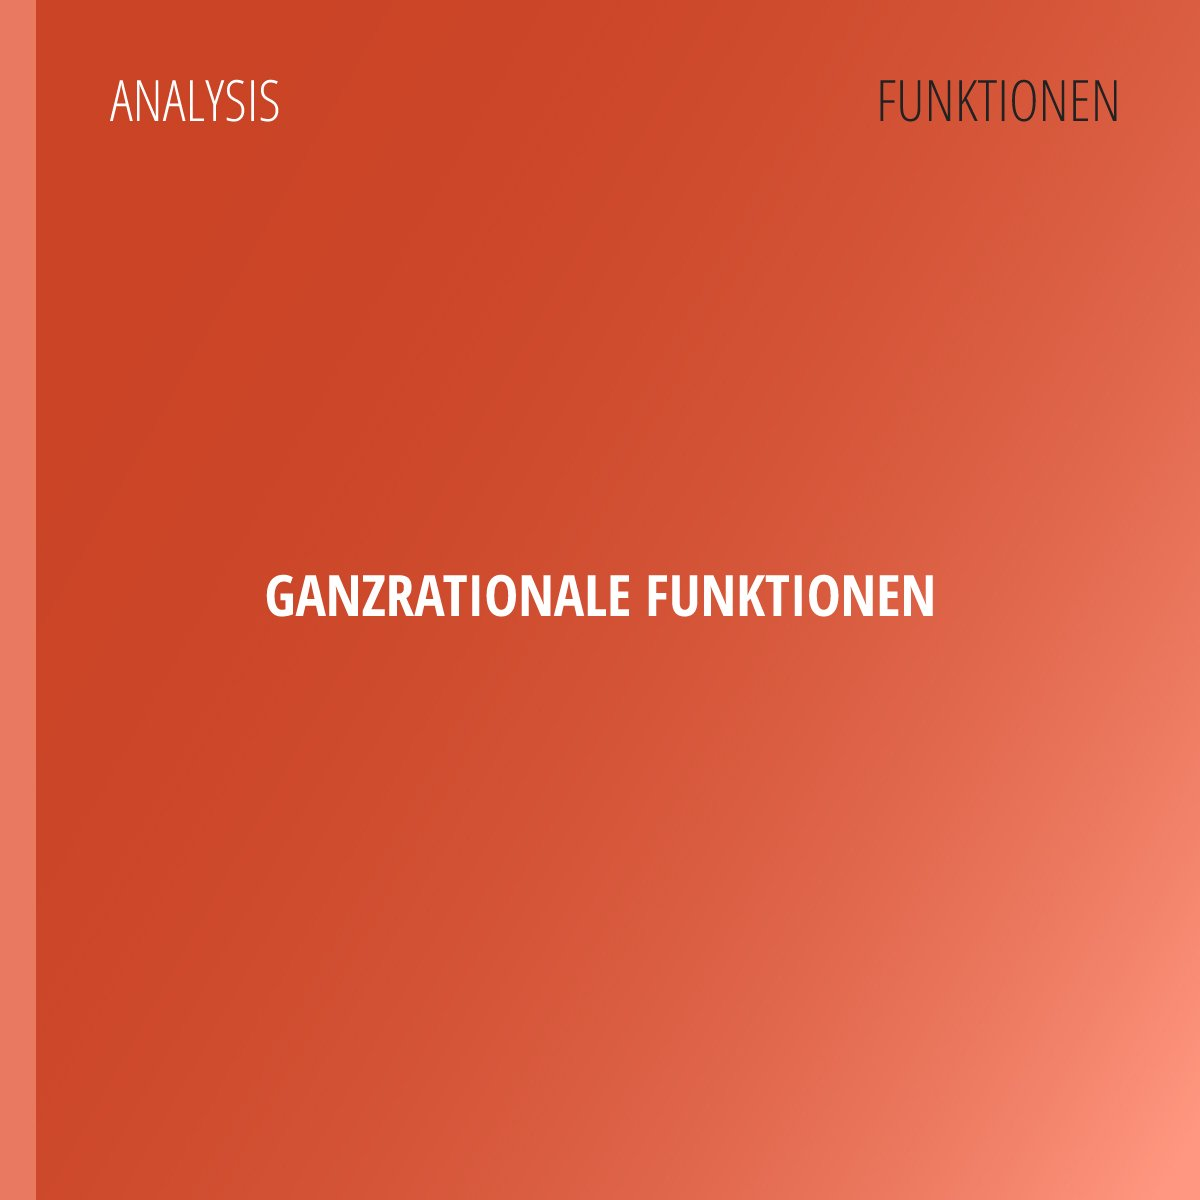 Ganzrationale Funktionen — Polynome | abiturma on